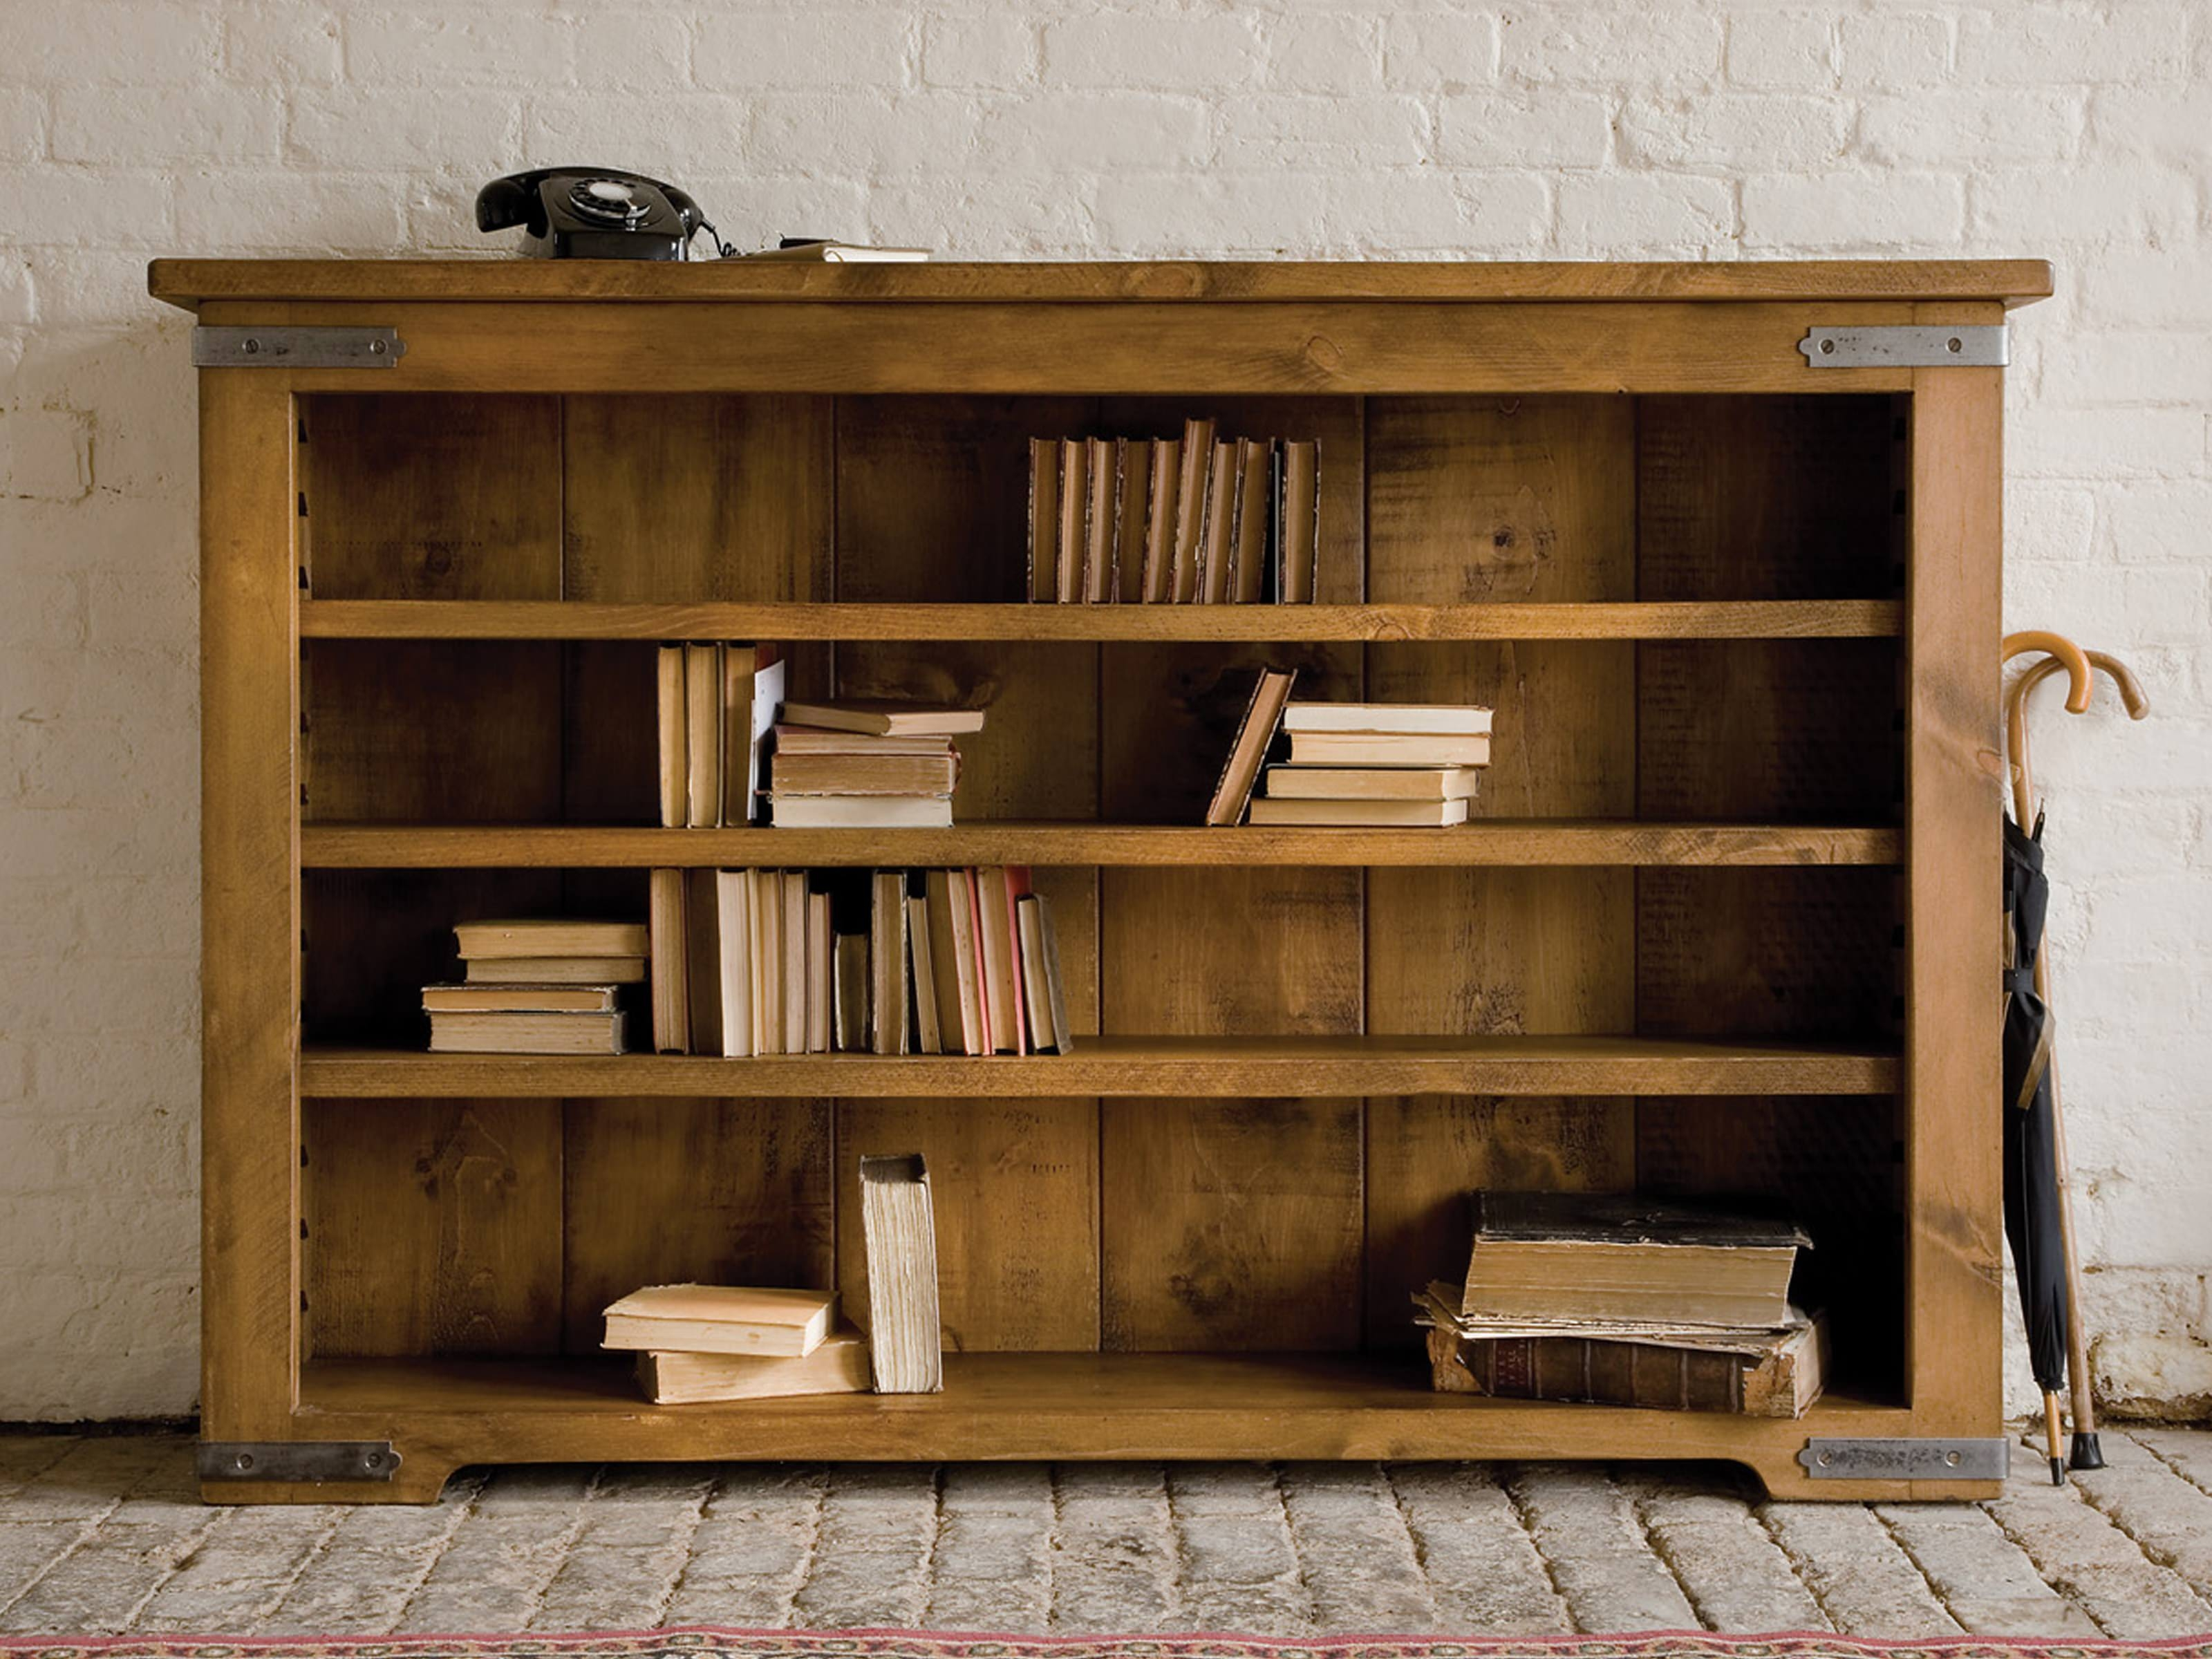 Terrific Unfinished Oak Low Bookcase Over Stones Floors And White Regarding Classic Bookshelves (#14 of 15)